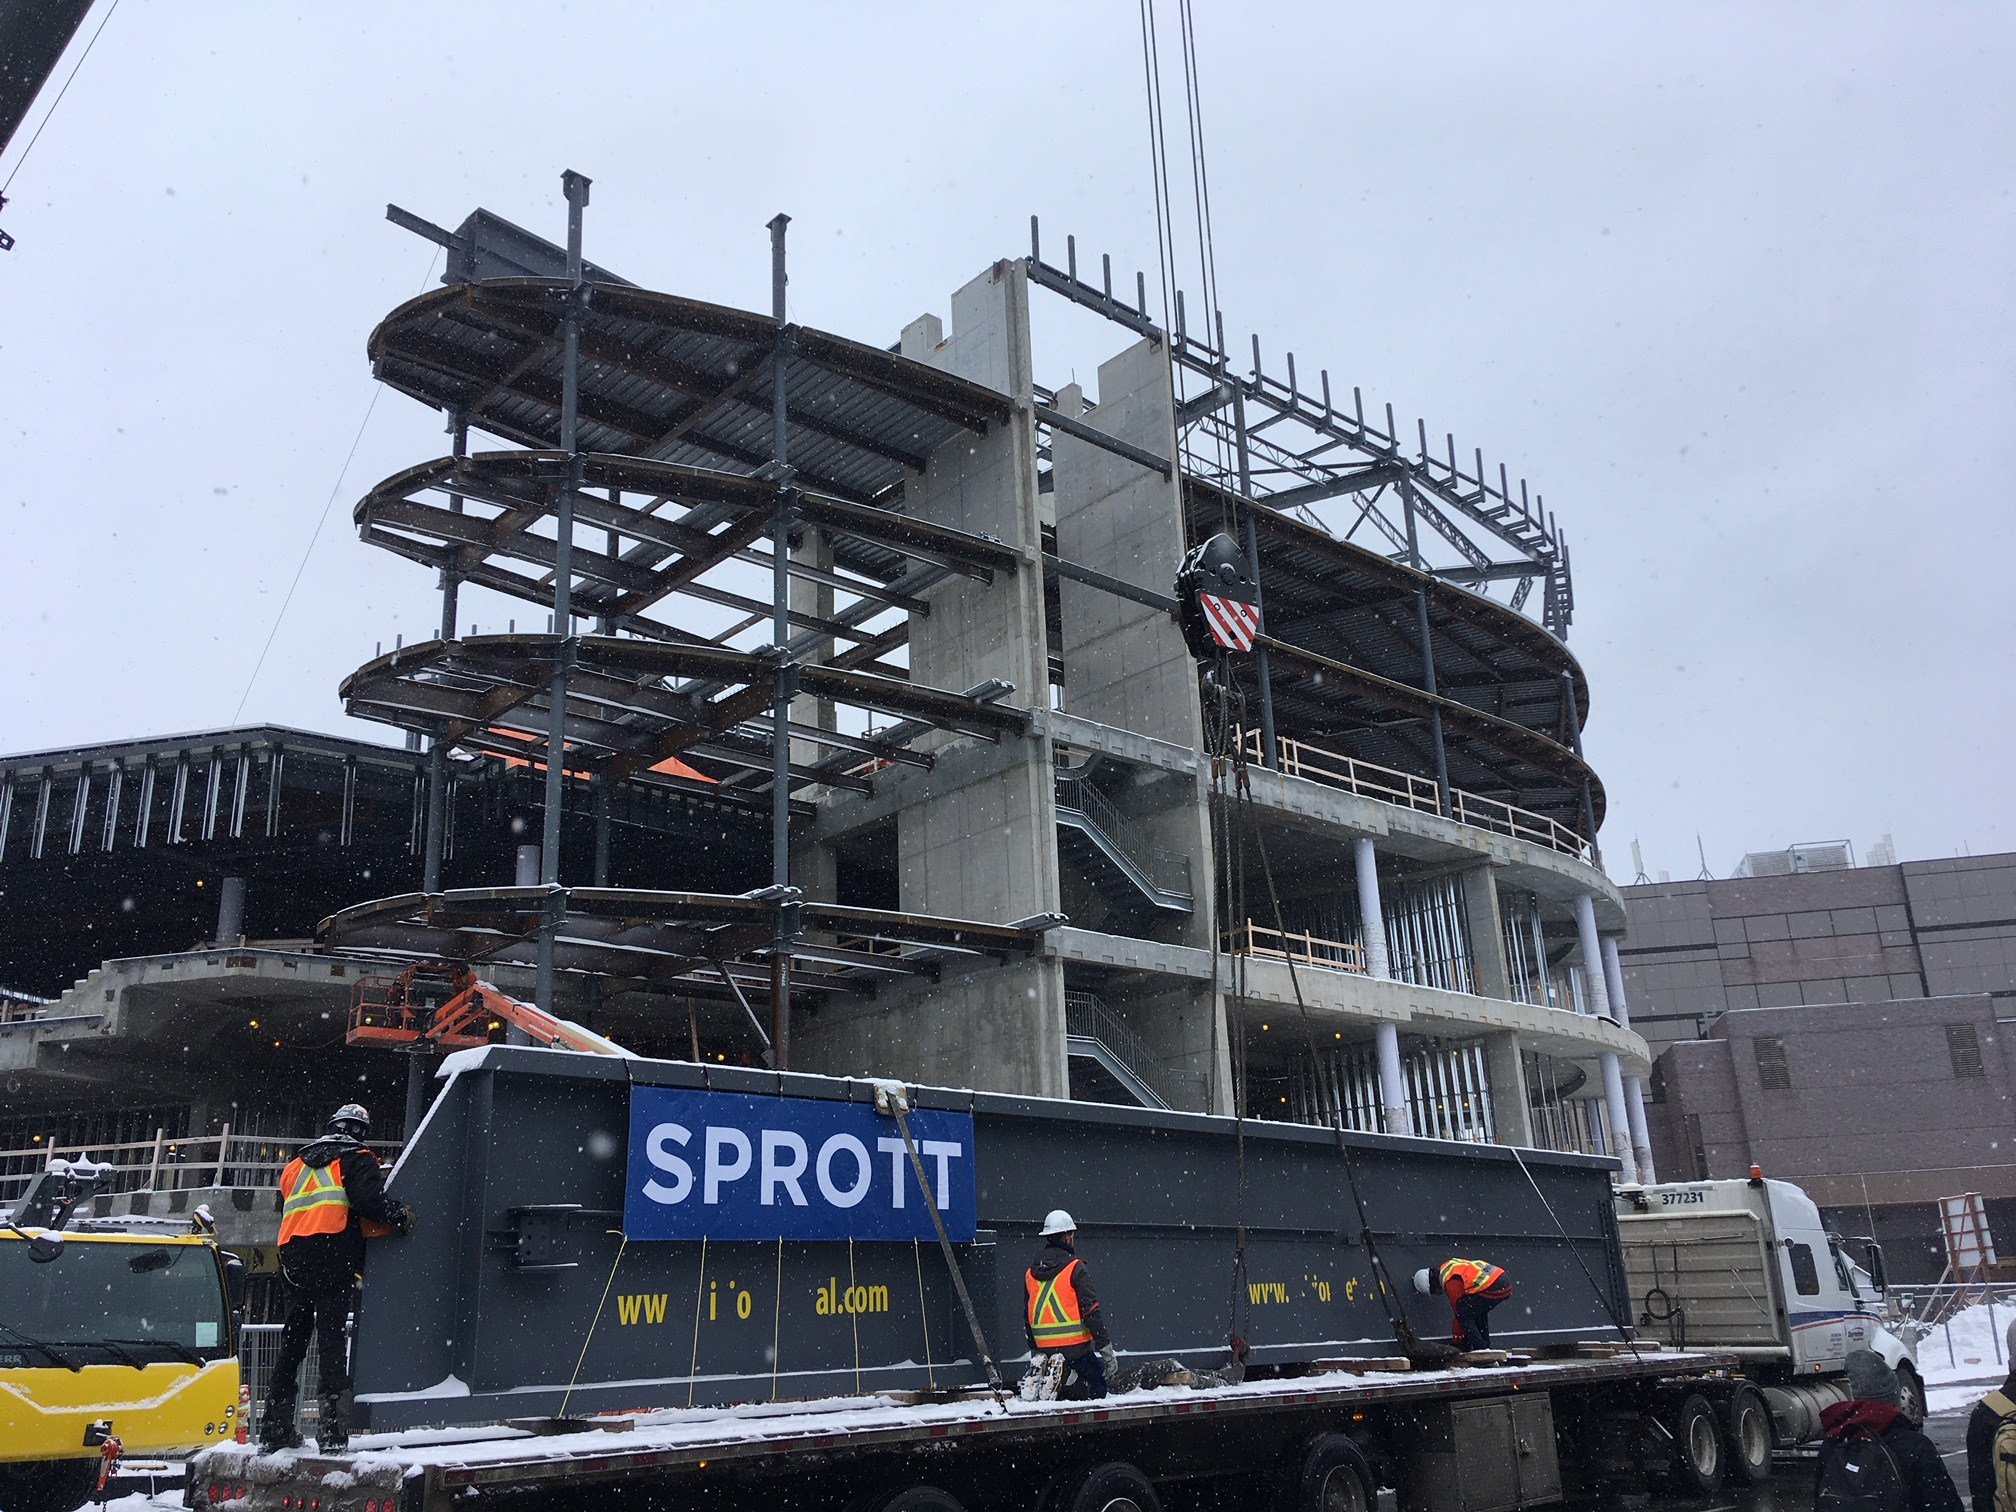 A SPROTT banner on top of the mega beam on the truck